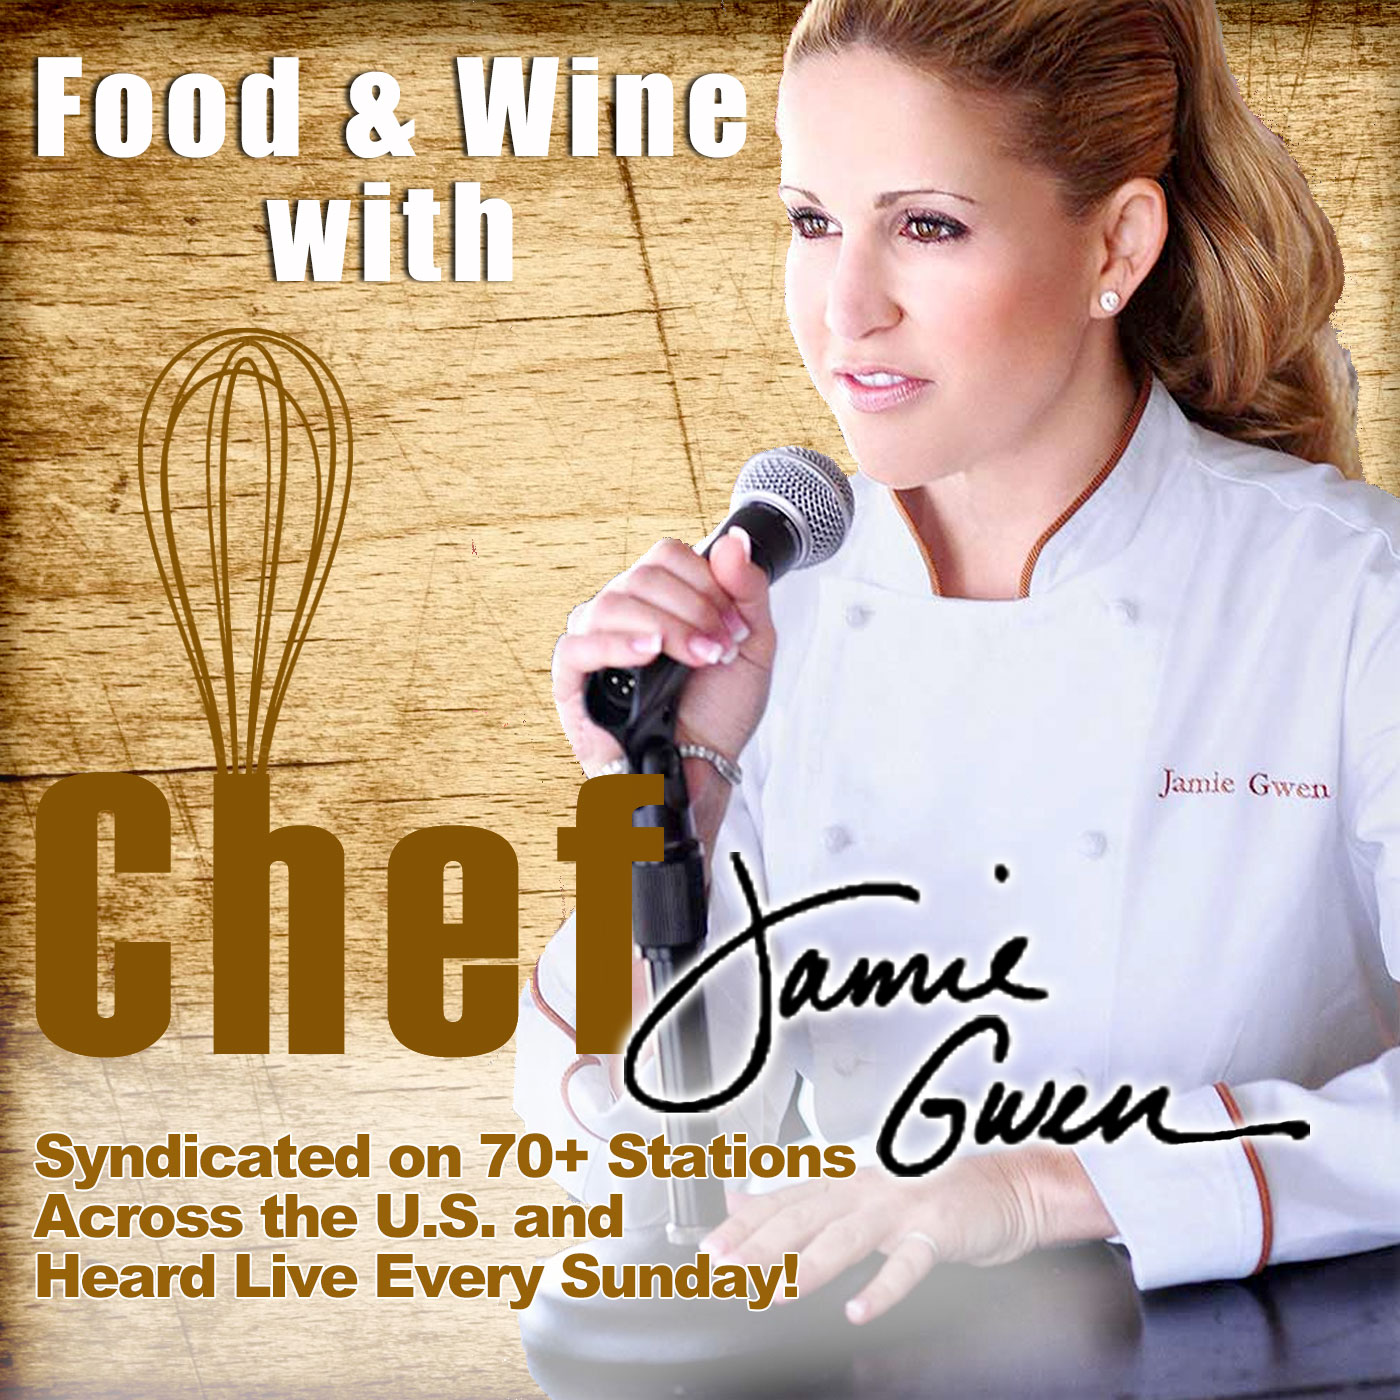 FOOD & WINE with CHEF JAMIE GWEN